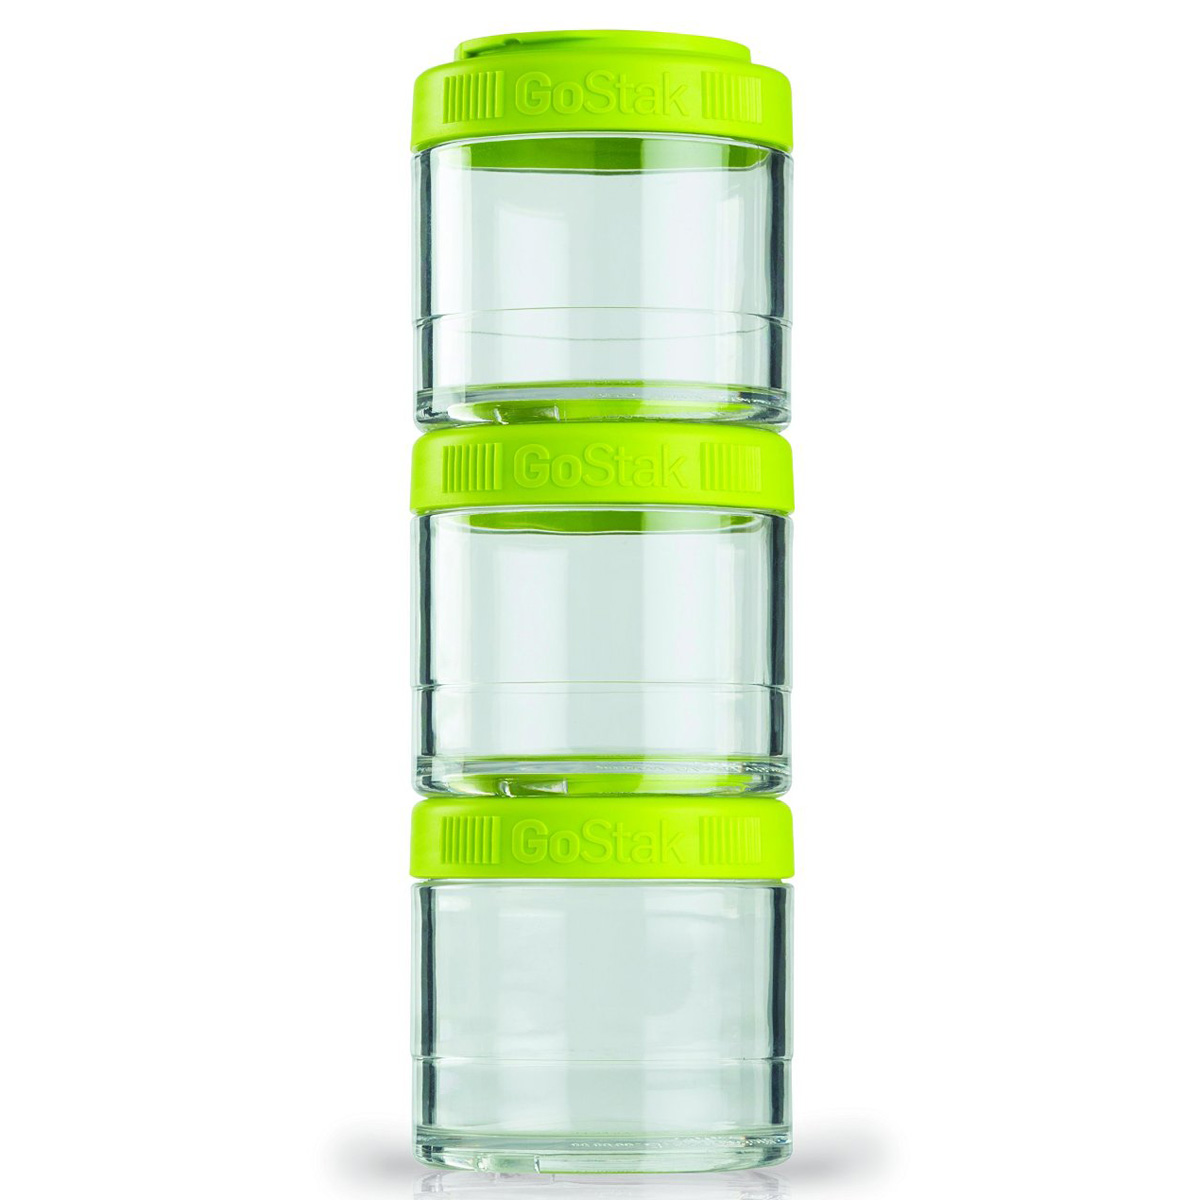 Blender Bottle GoStak 100cc 3Pak Twist n' Lock Storage Jars by